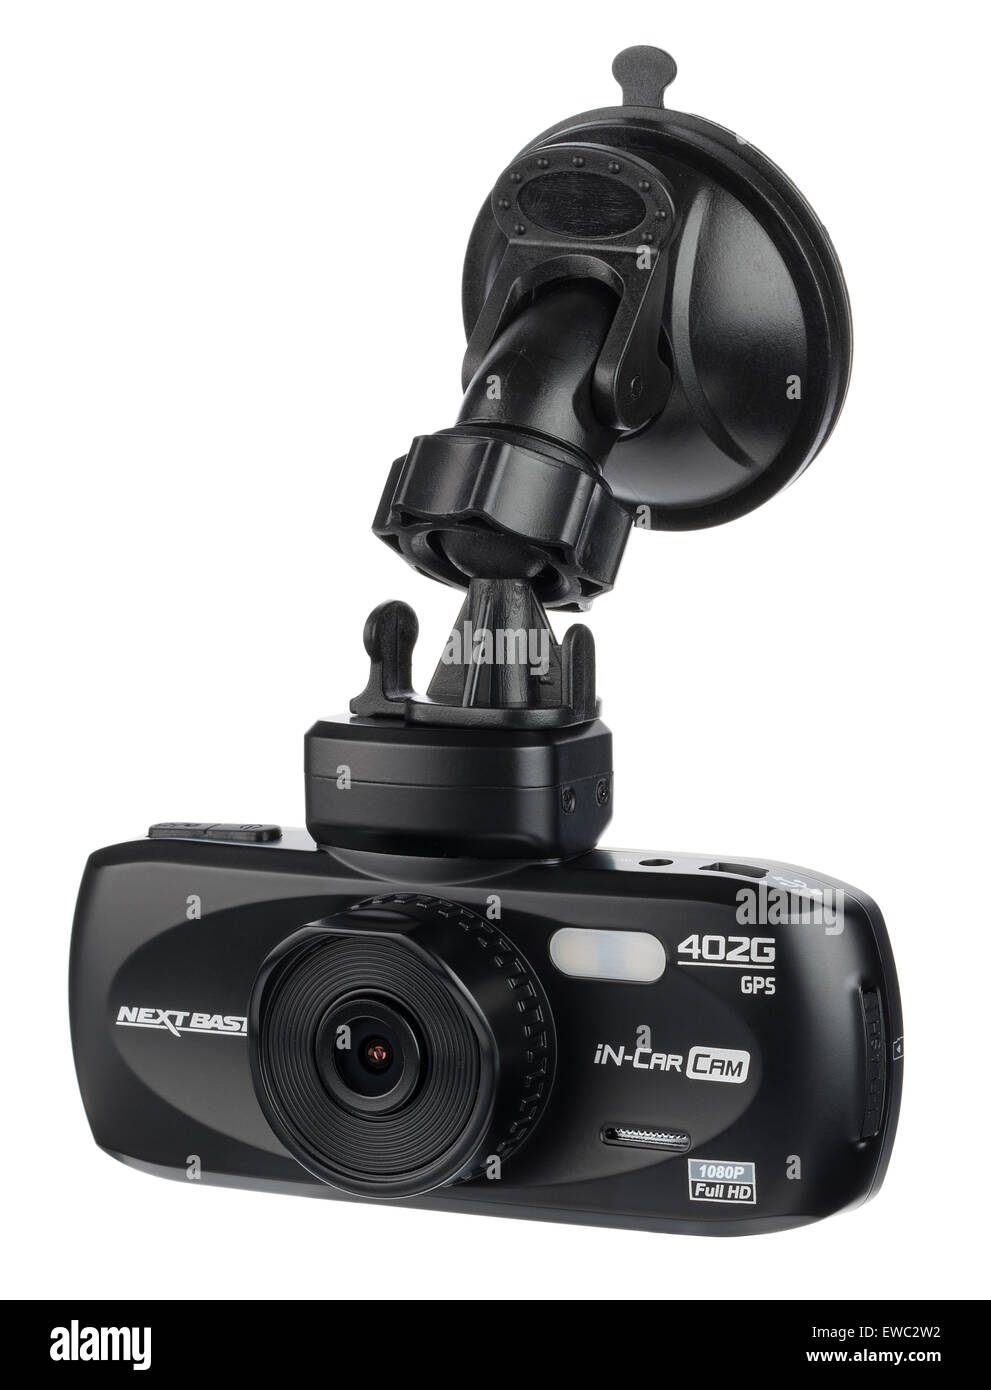 Nextbase in car cam 402-G Professional camera. Record video whilst driving. Dashboard or windscreen mounted video - Stock Image